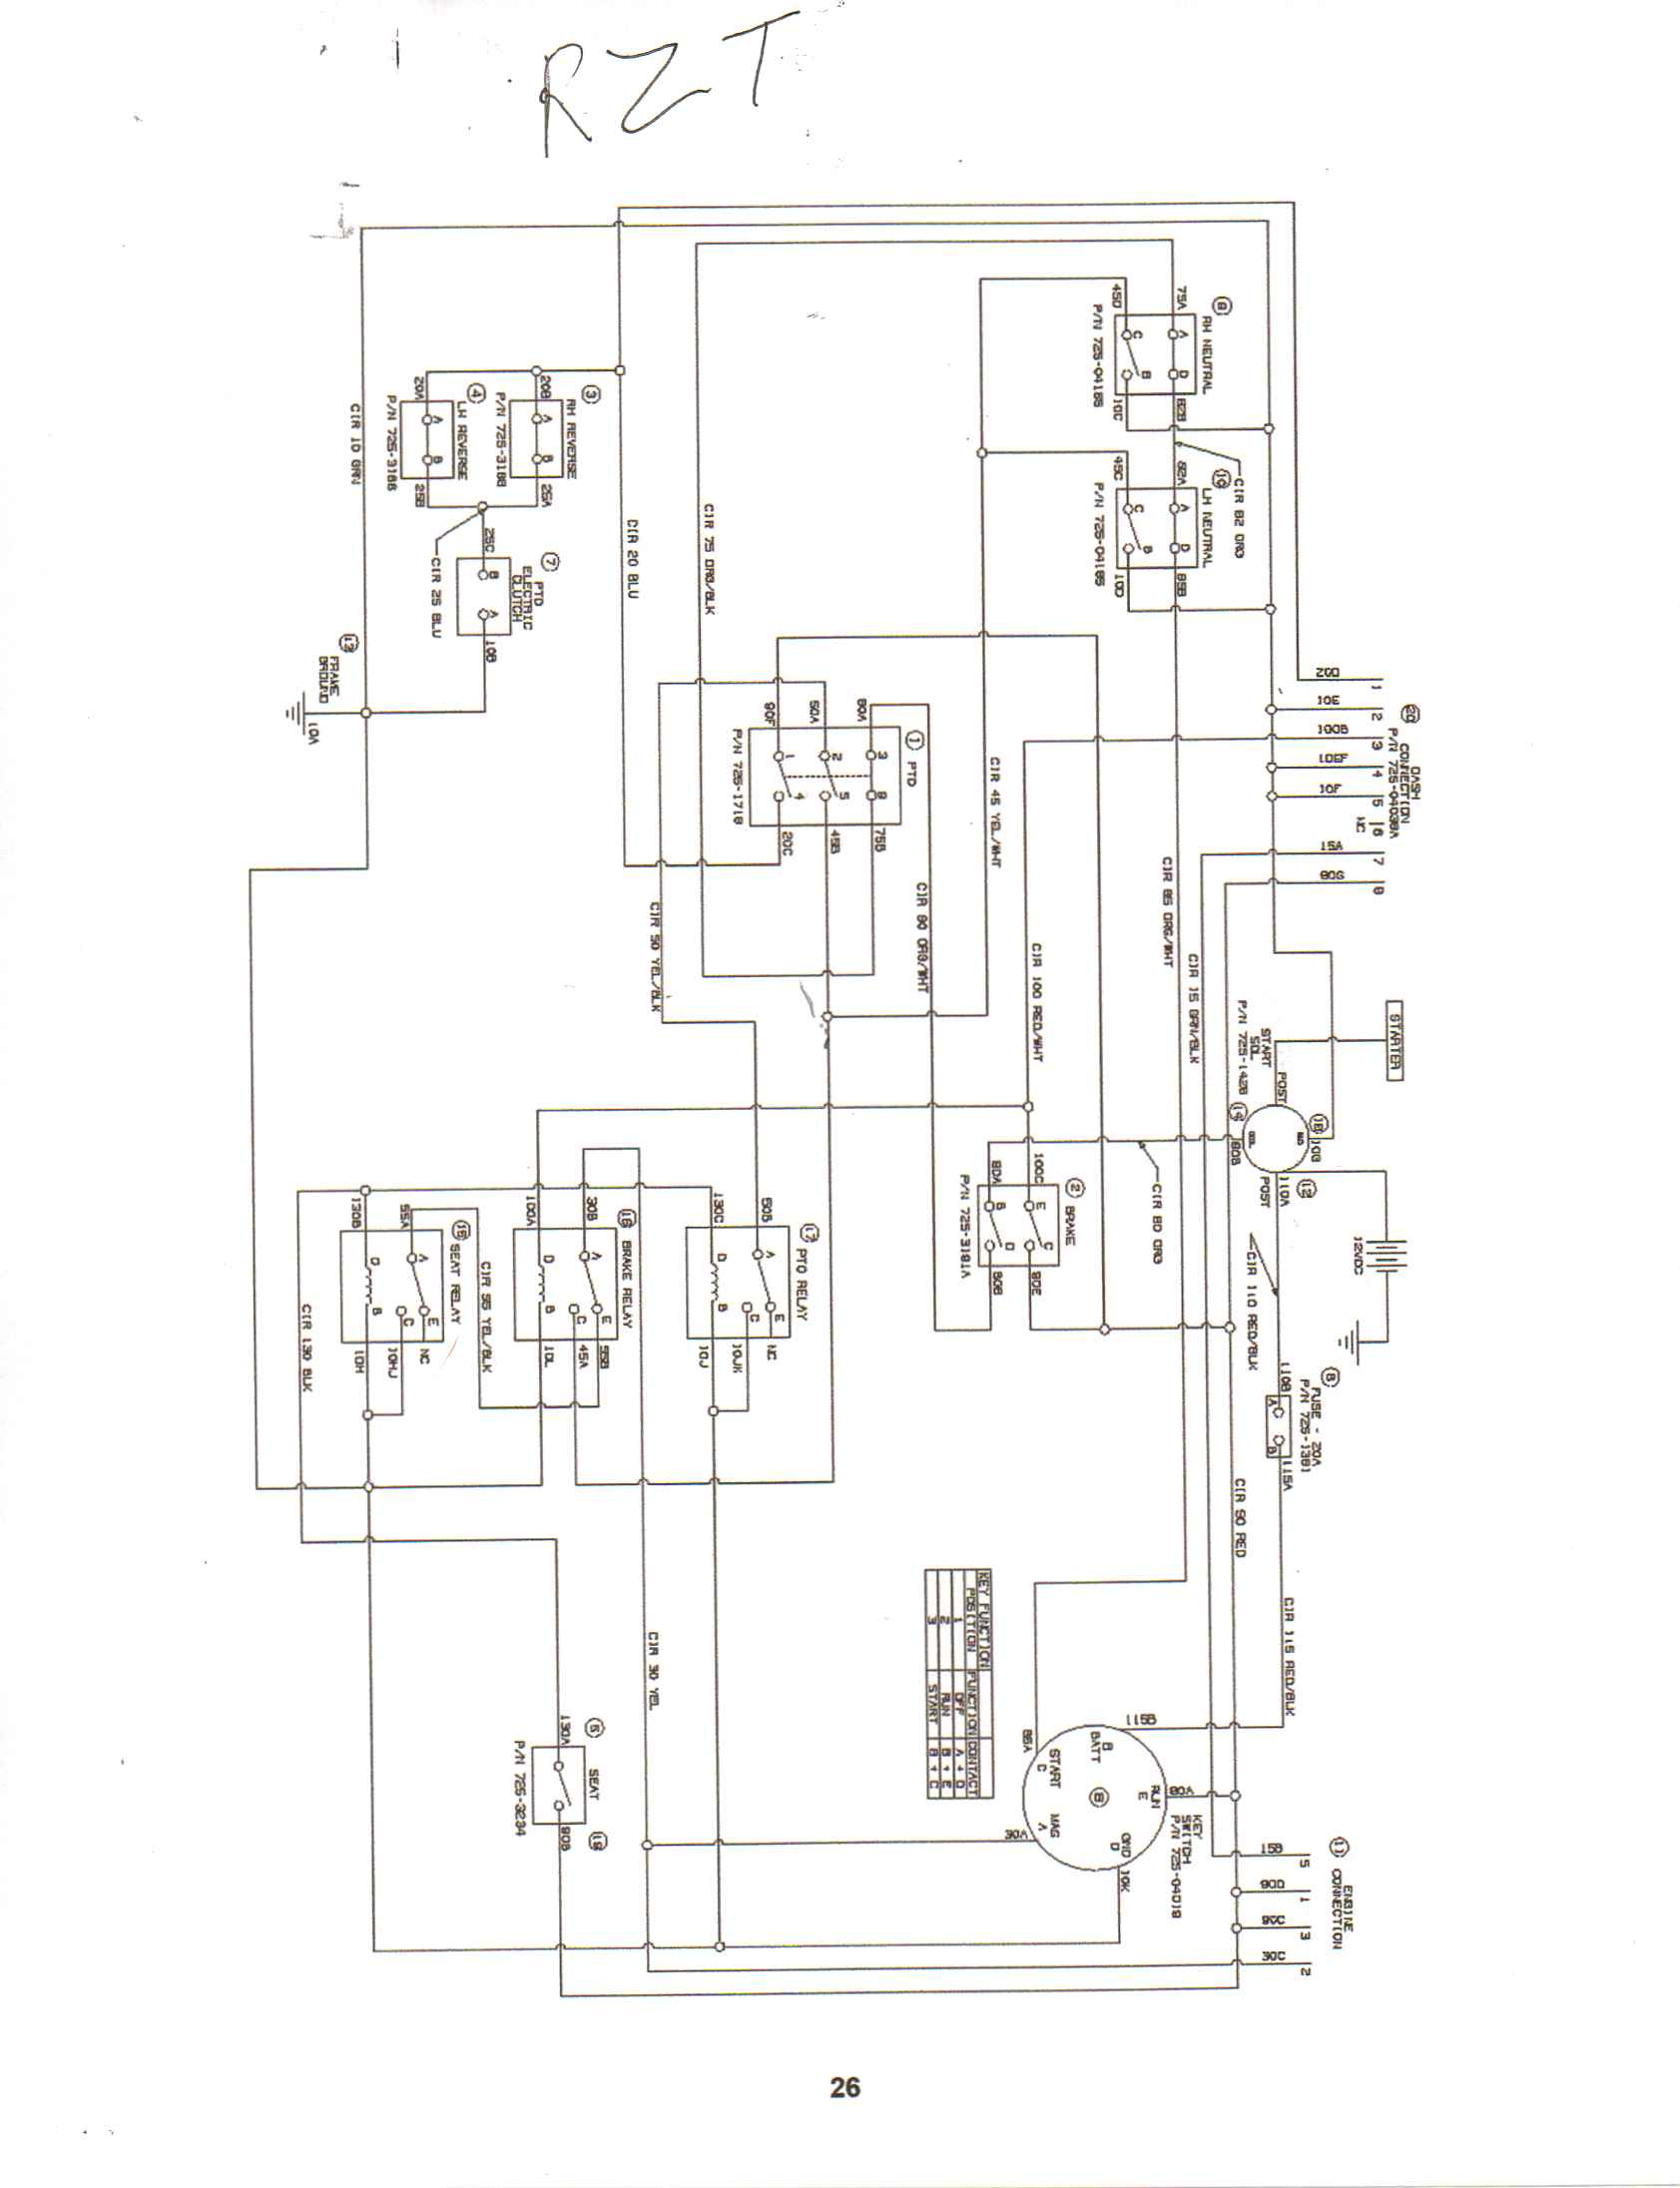 wiring diagram for cub cadet the wiring diagram wiring diagram for cub cadet rzt 22 wiring wiring diagrams wiring diagram